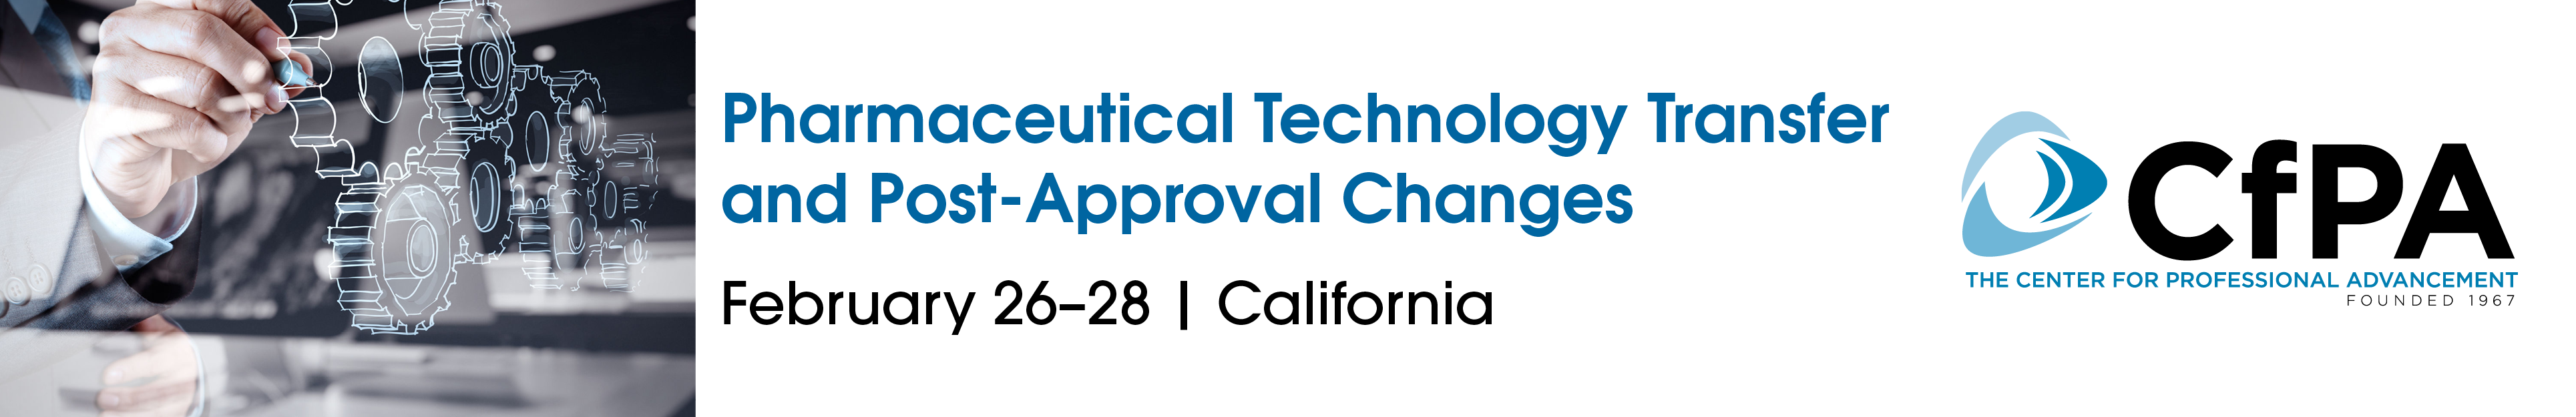 Pharmaceutical Technology Transfer and Post-Approval Changes